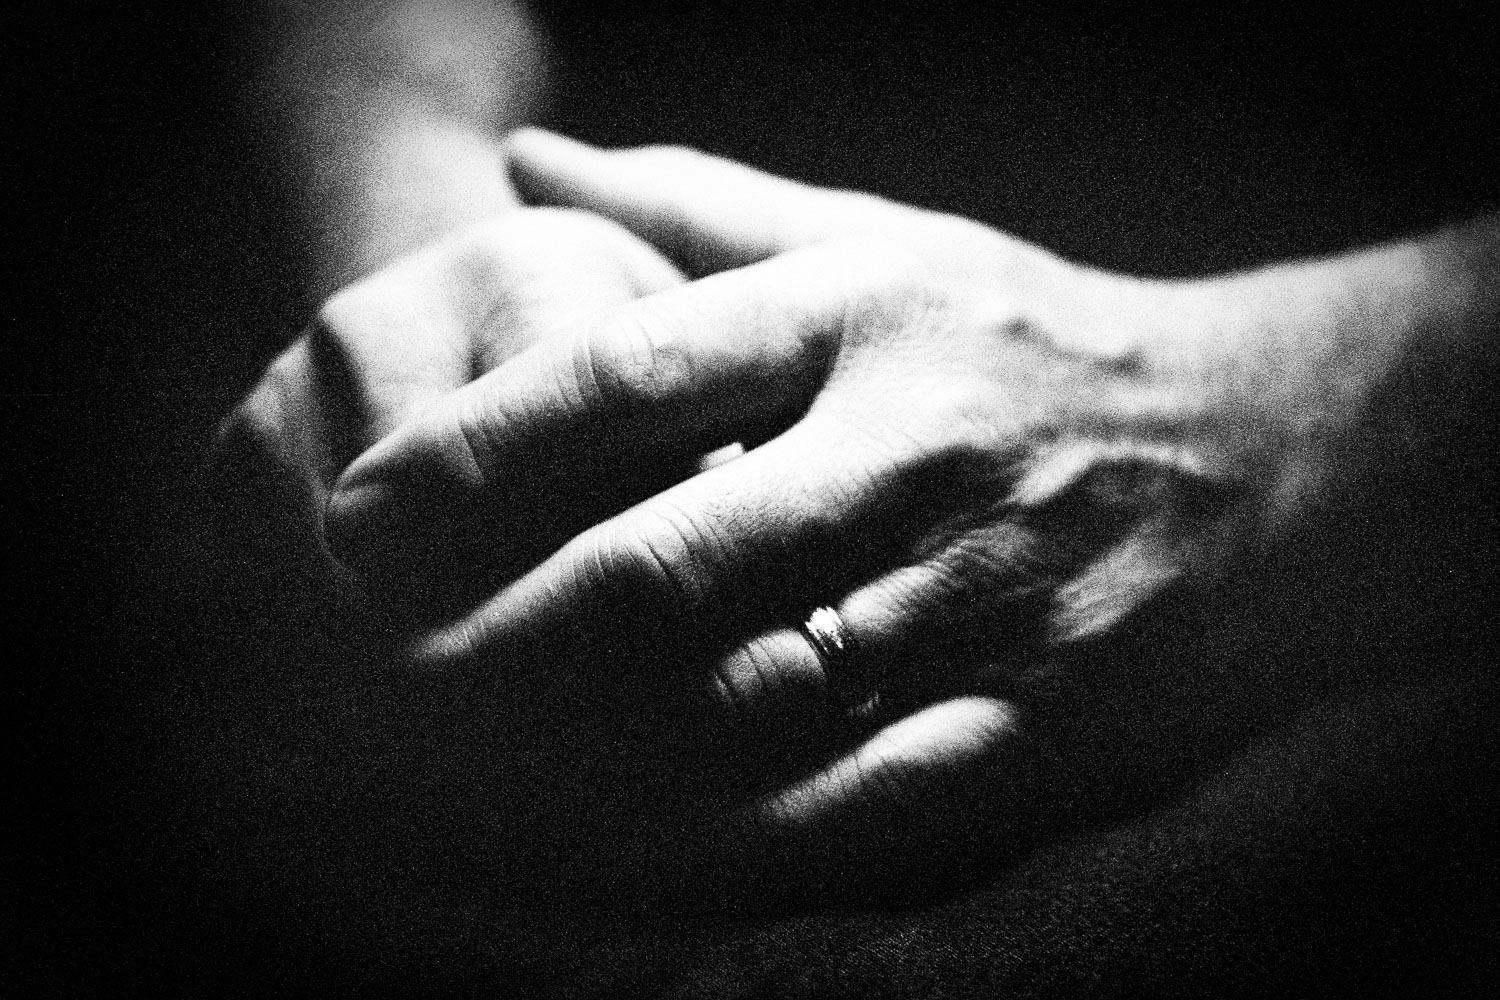 My Love's Hands II